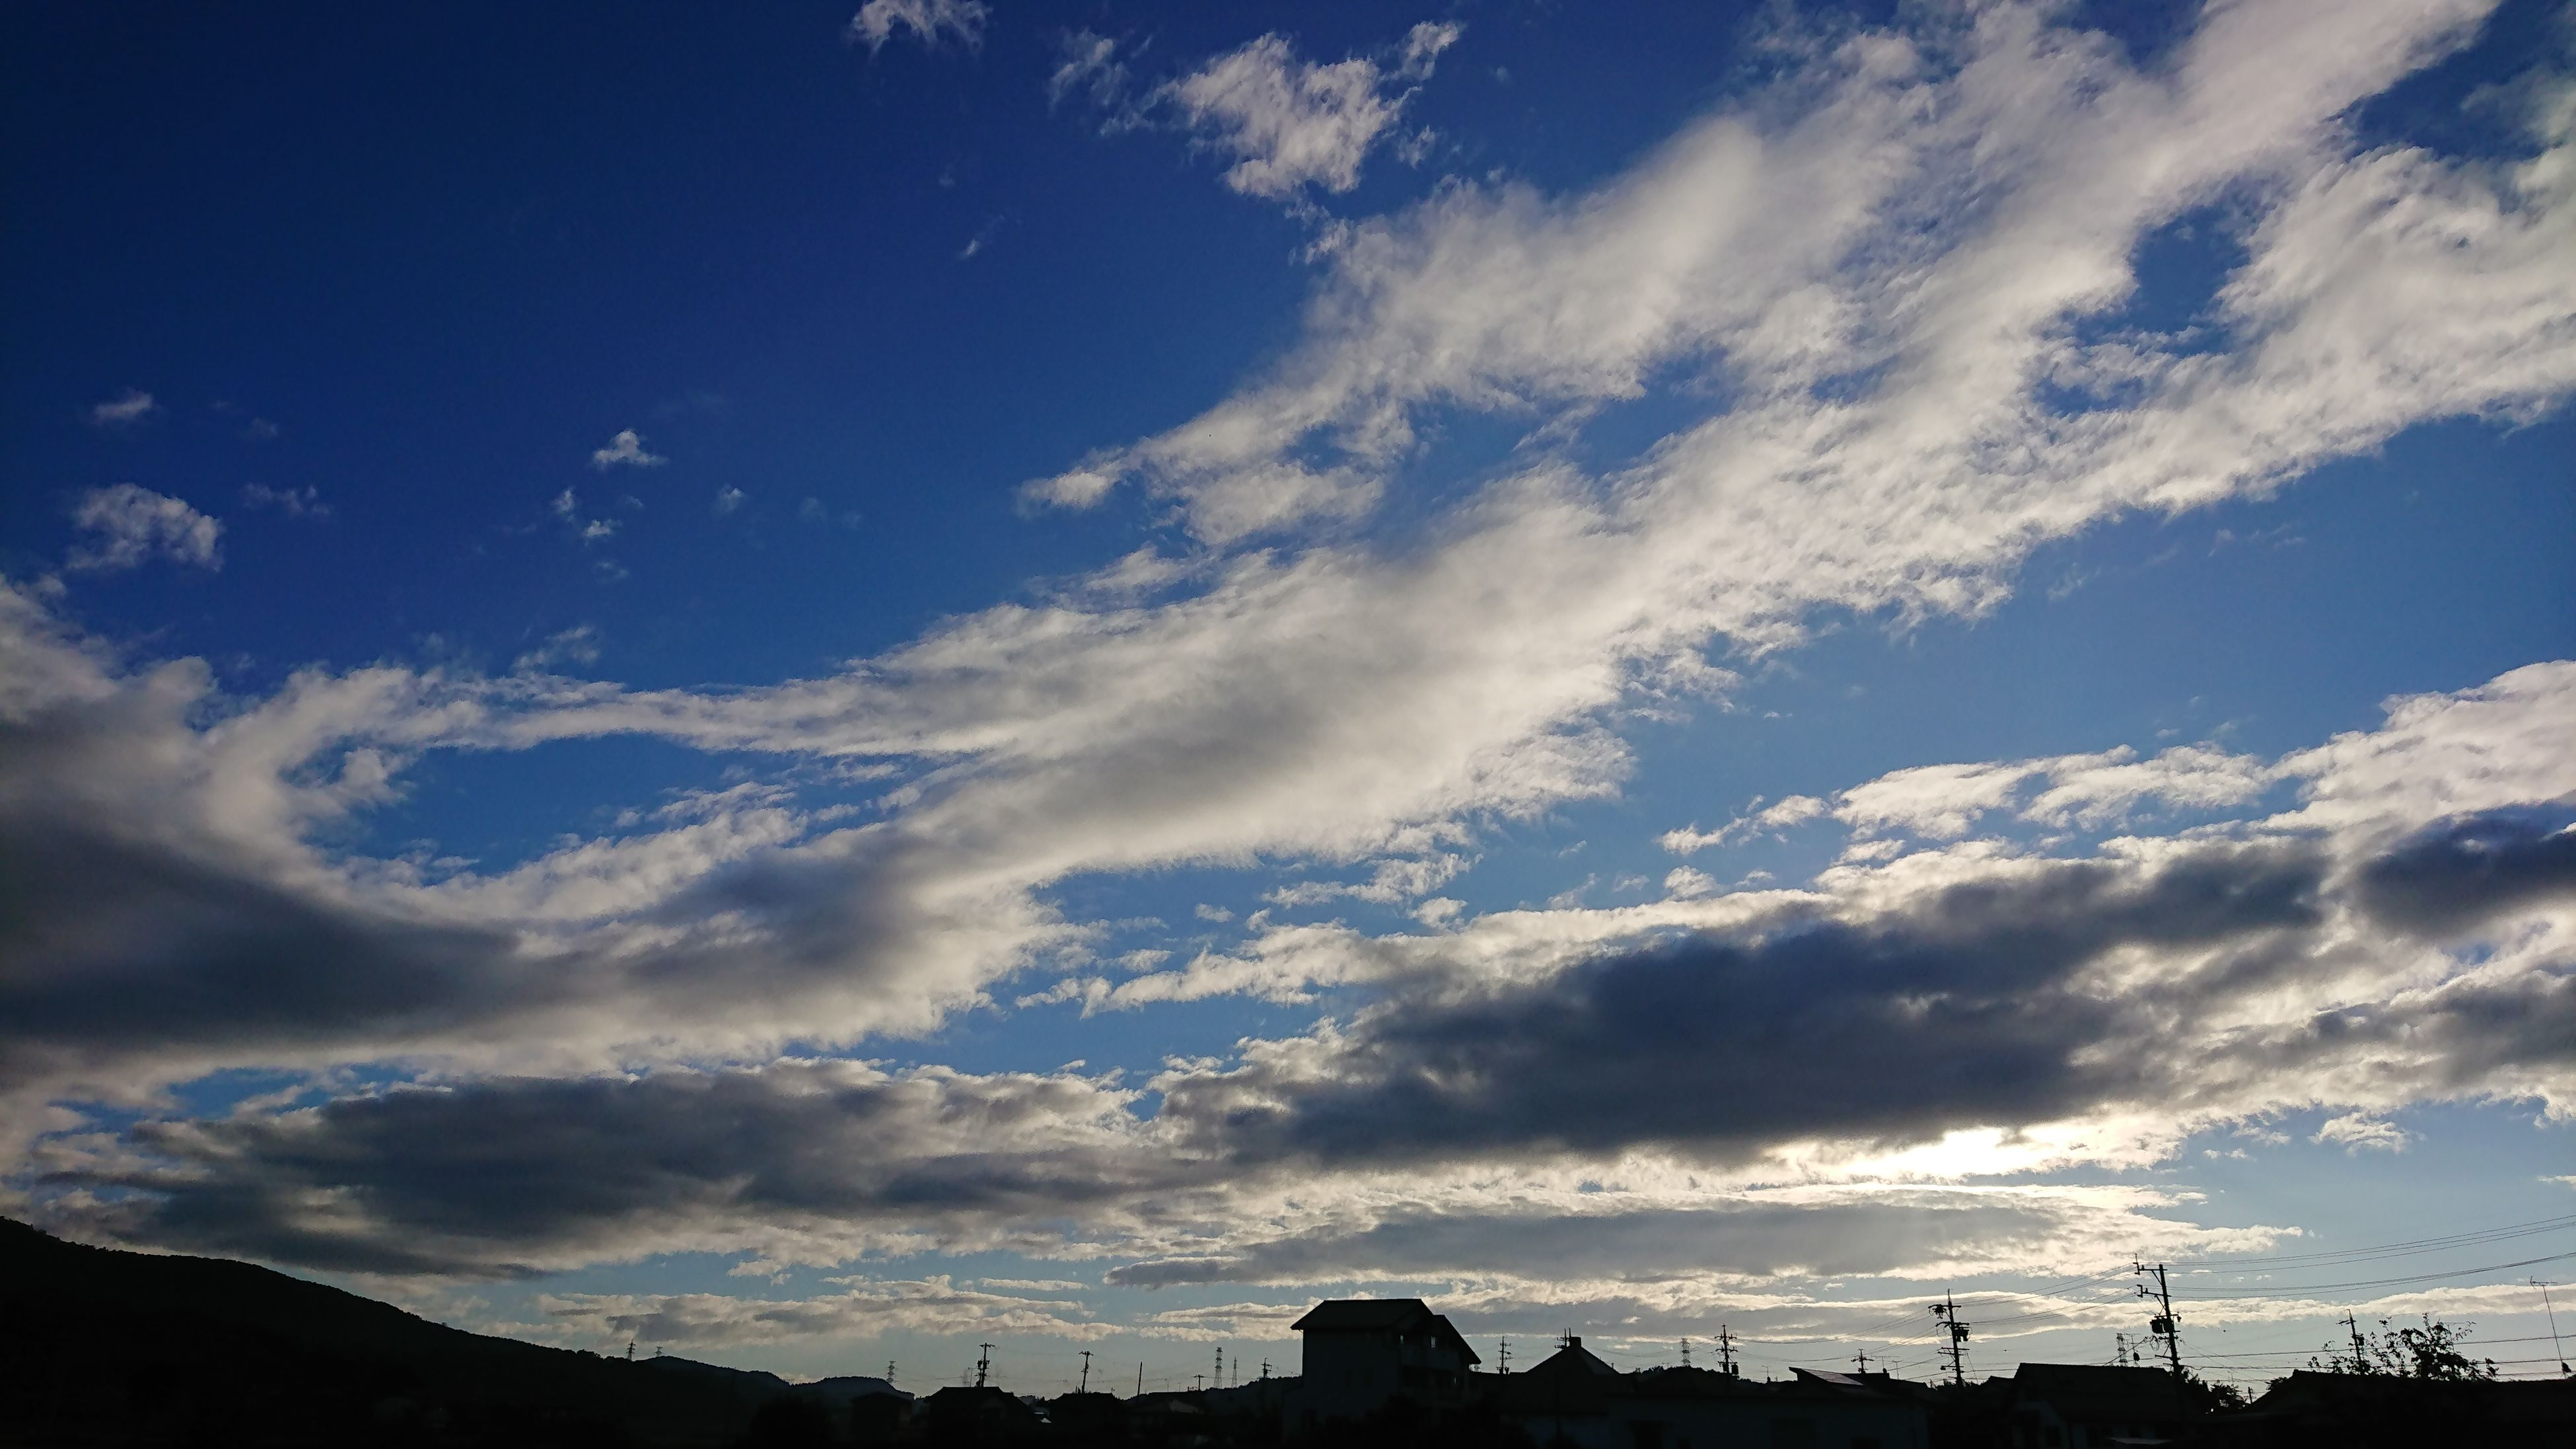 sky, cloud - sky, low angle view, beauty in nature, no people, scenics, nature, silhouette, outdoors, day, blue